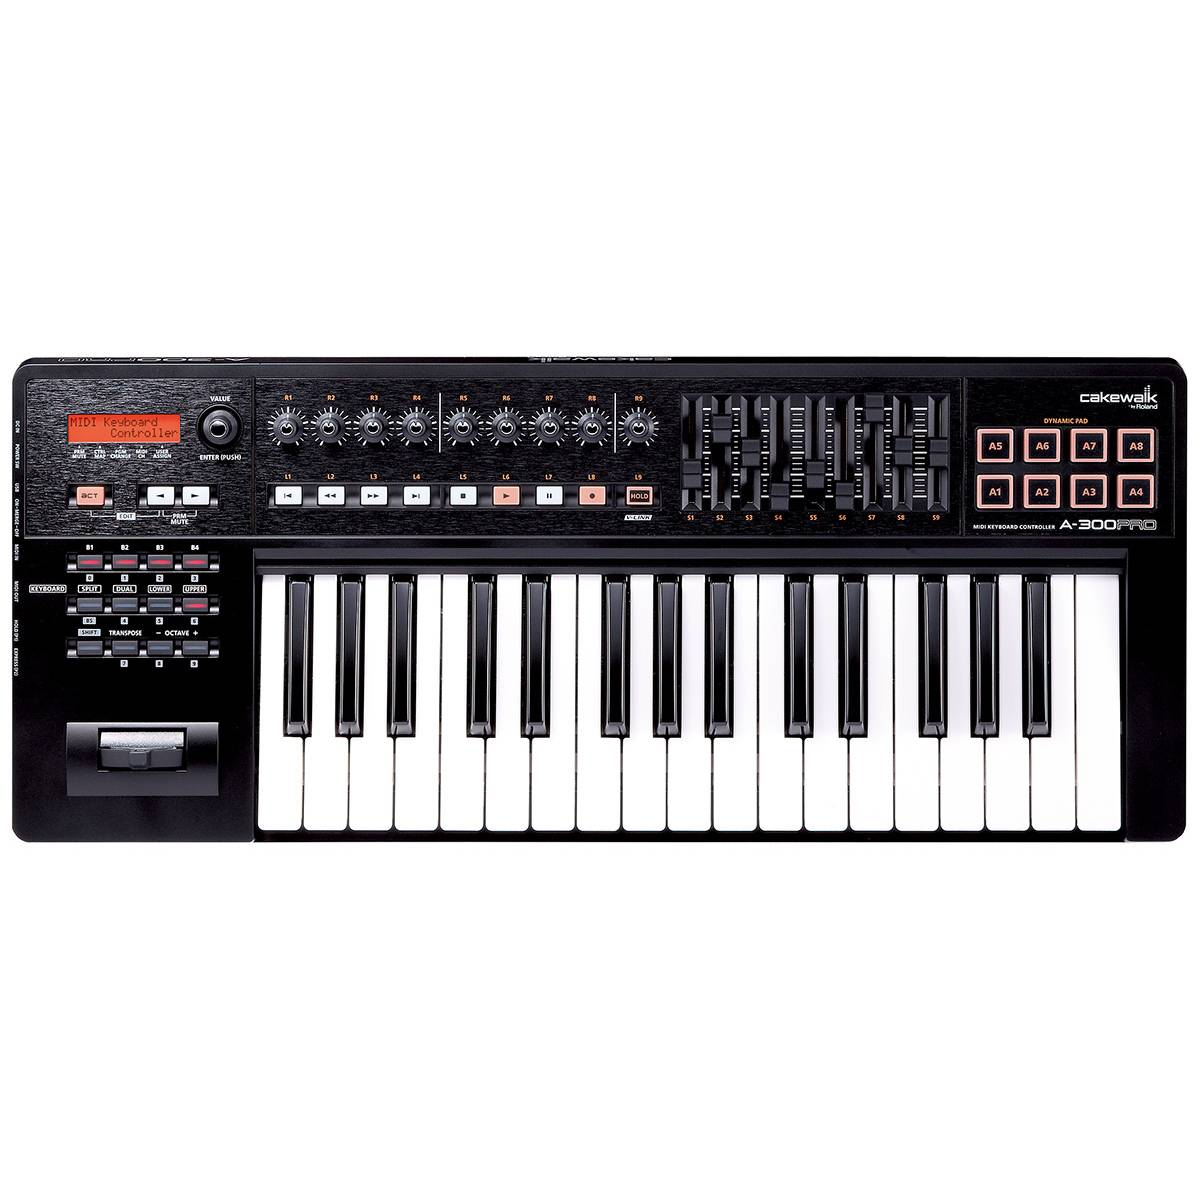 roland a 300 pro usb midi keyboard controller 37 key midi keyboard from inta audio uk. Black Bedroom Furniture Sets. Home Design Ideas